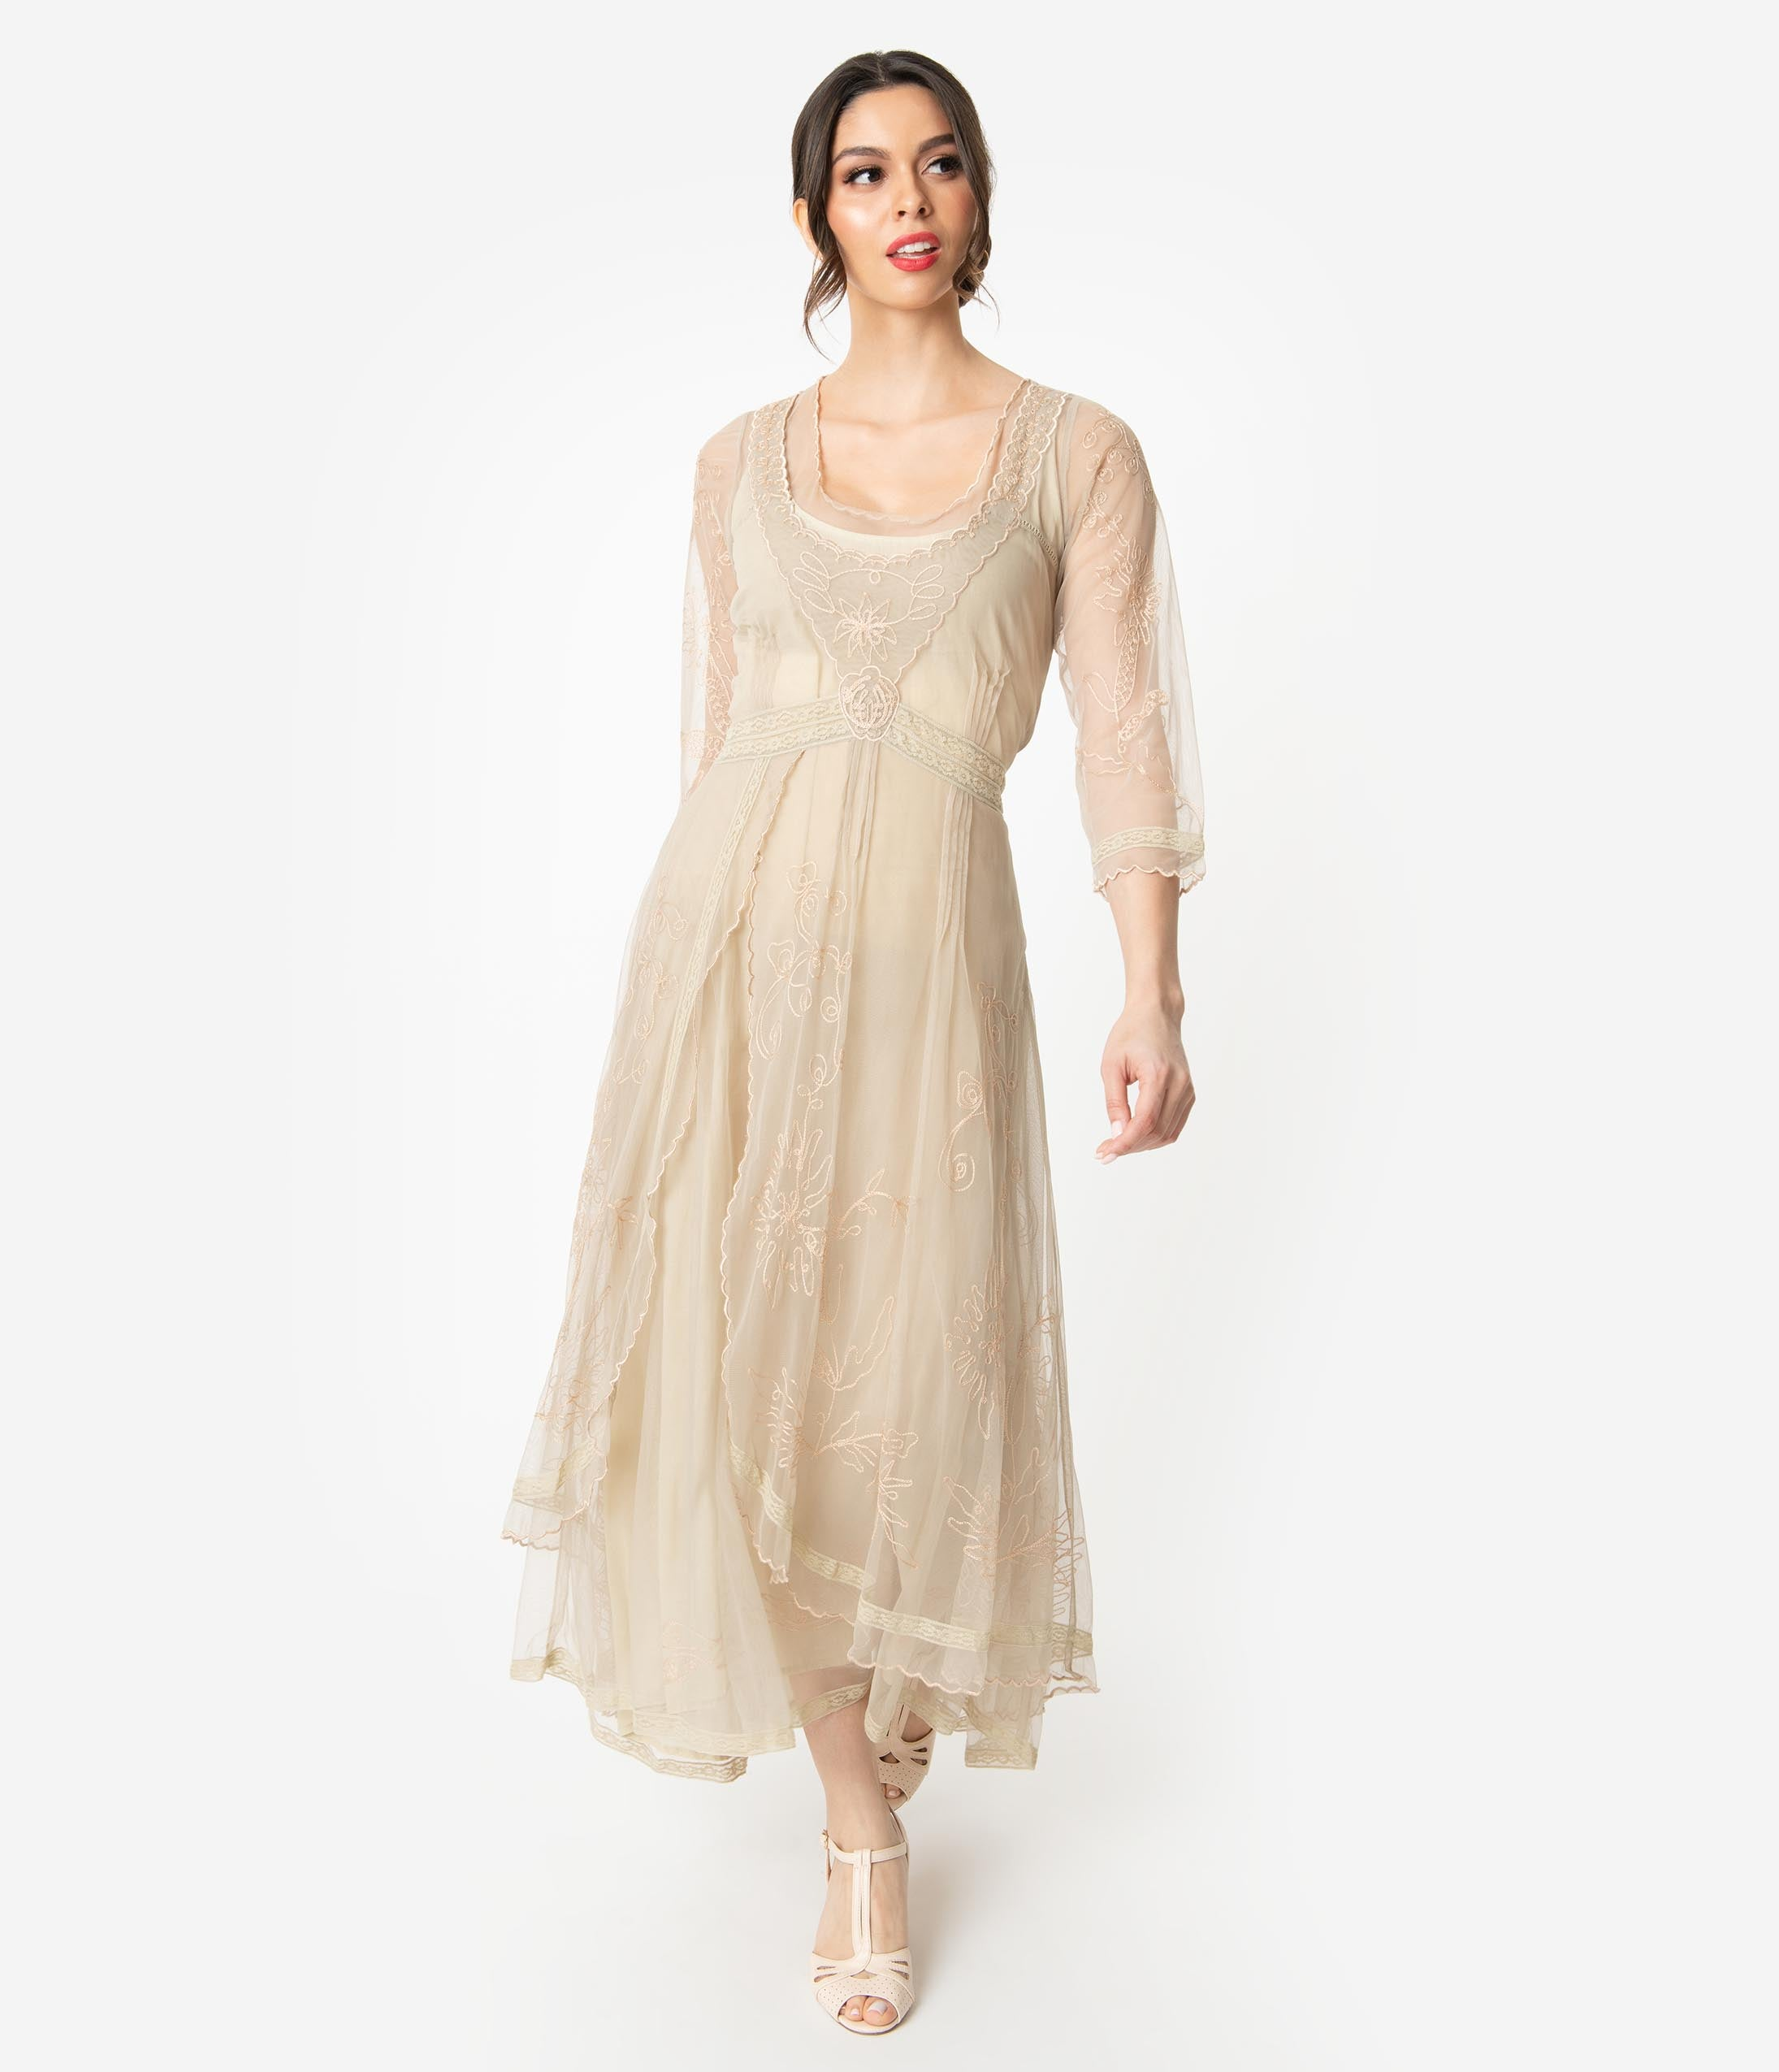 aac0a019c520 Vintage Cream Embroidered Tulle Downton Abbey Edwardian Tea Party Dress